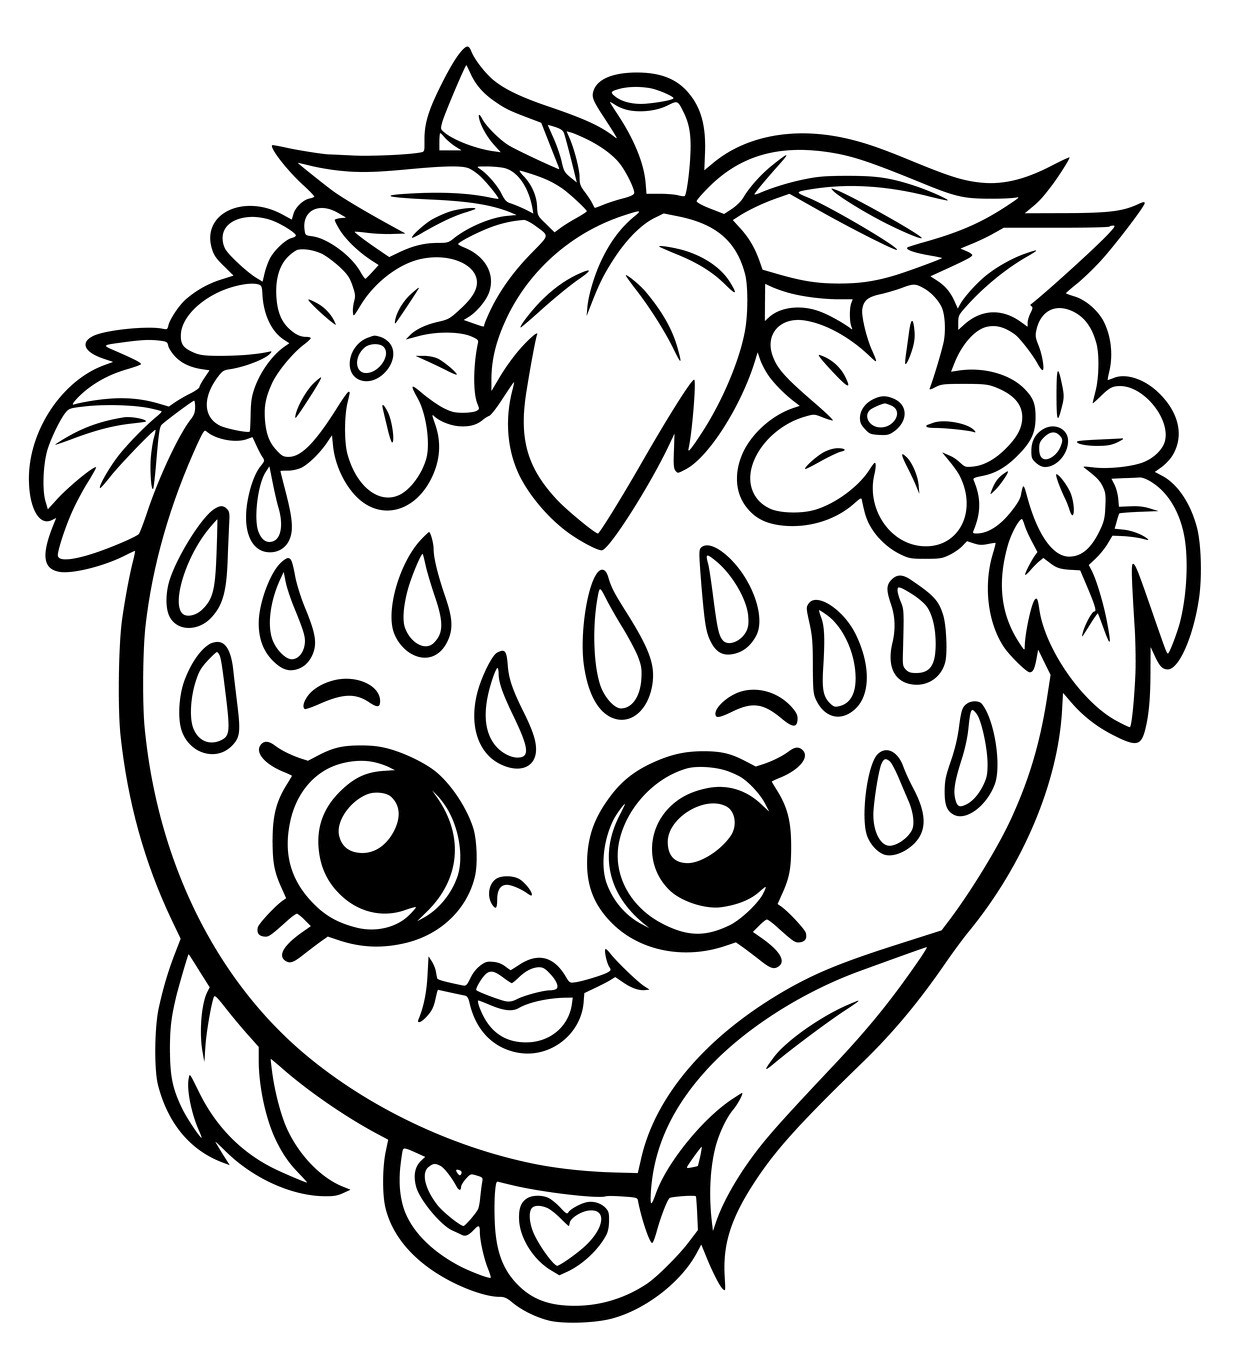 Free Shopkins Coloring Pages Extravagant Free Shopkins Coloring - Shopkins Coloring Pages Free Printable